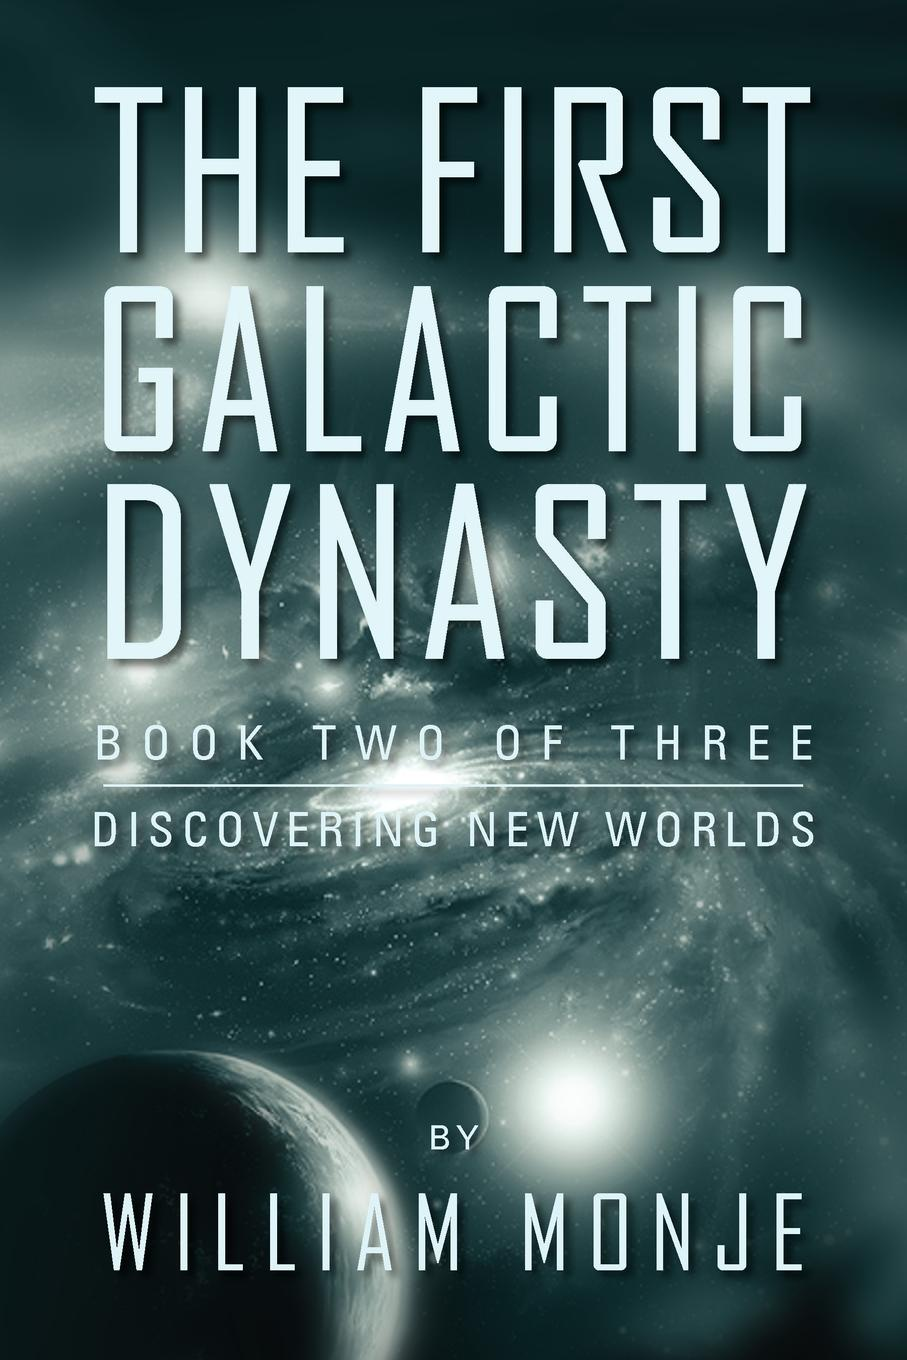 William Monje The First Galactic Dynasty. Book Two of Three: Discovering New Worlds our first book